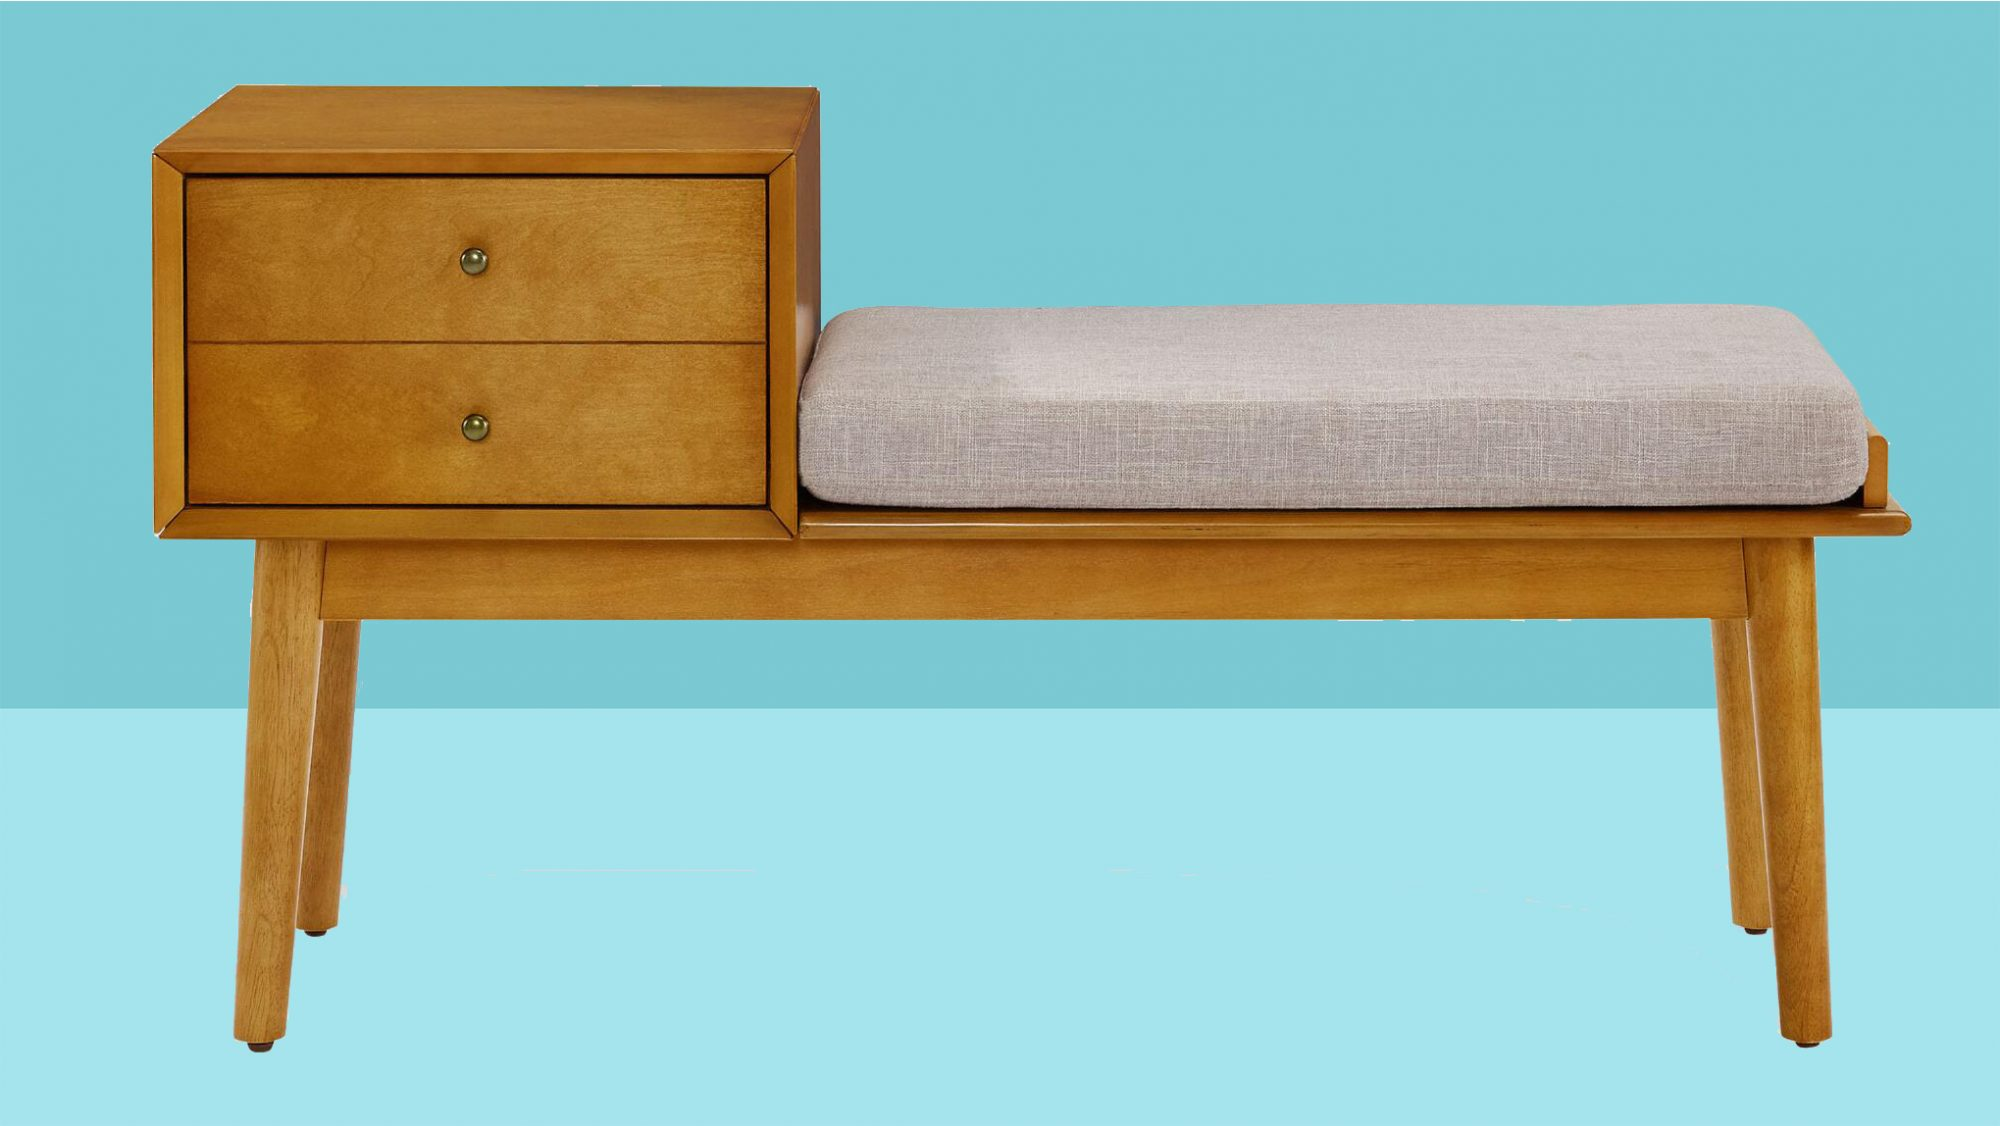 Small Entryway Decorating Ideas, storage bench on blue background